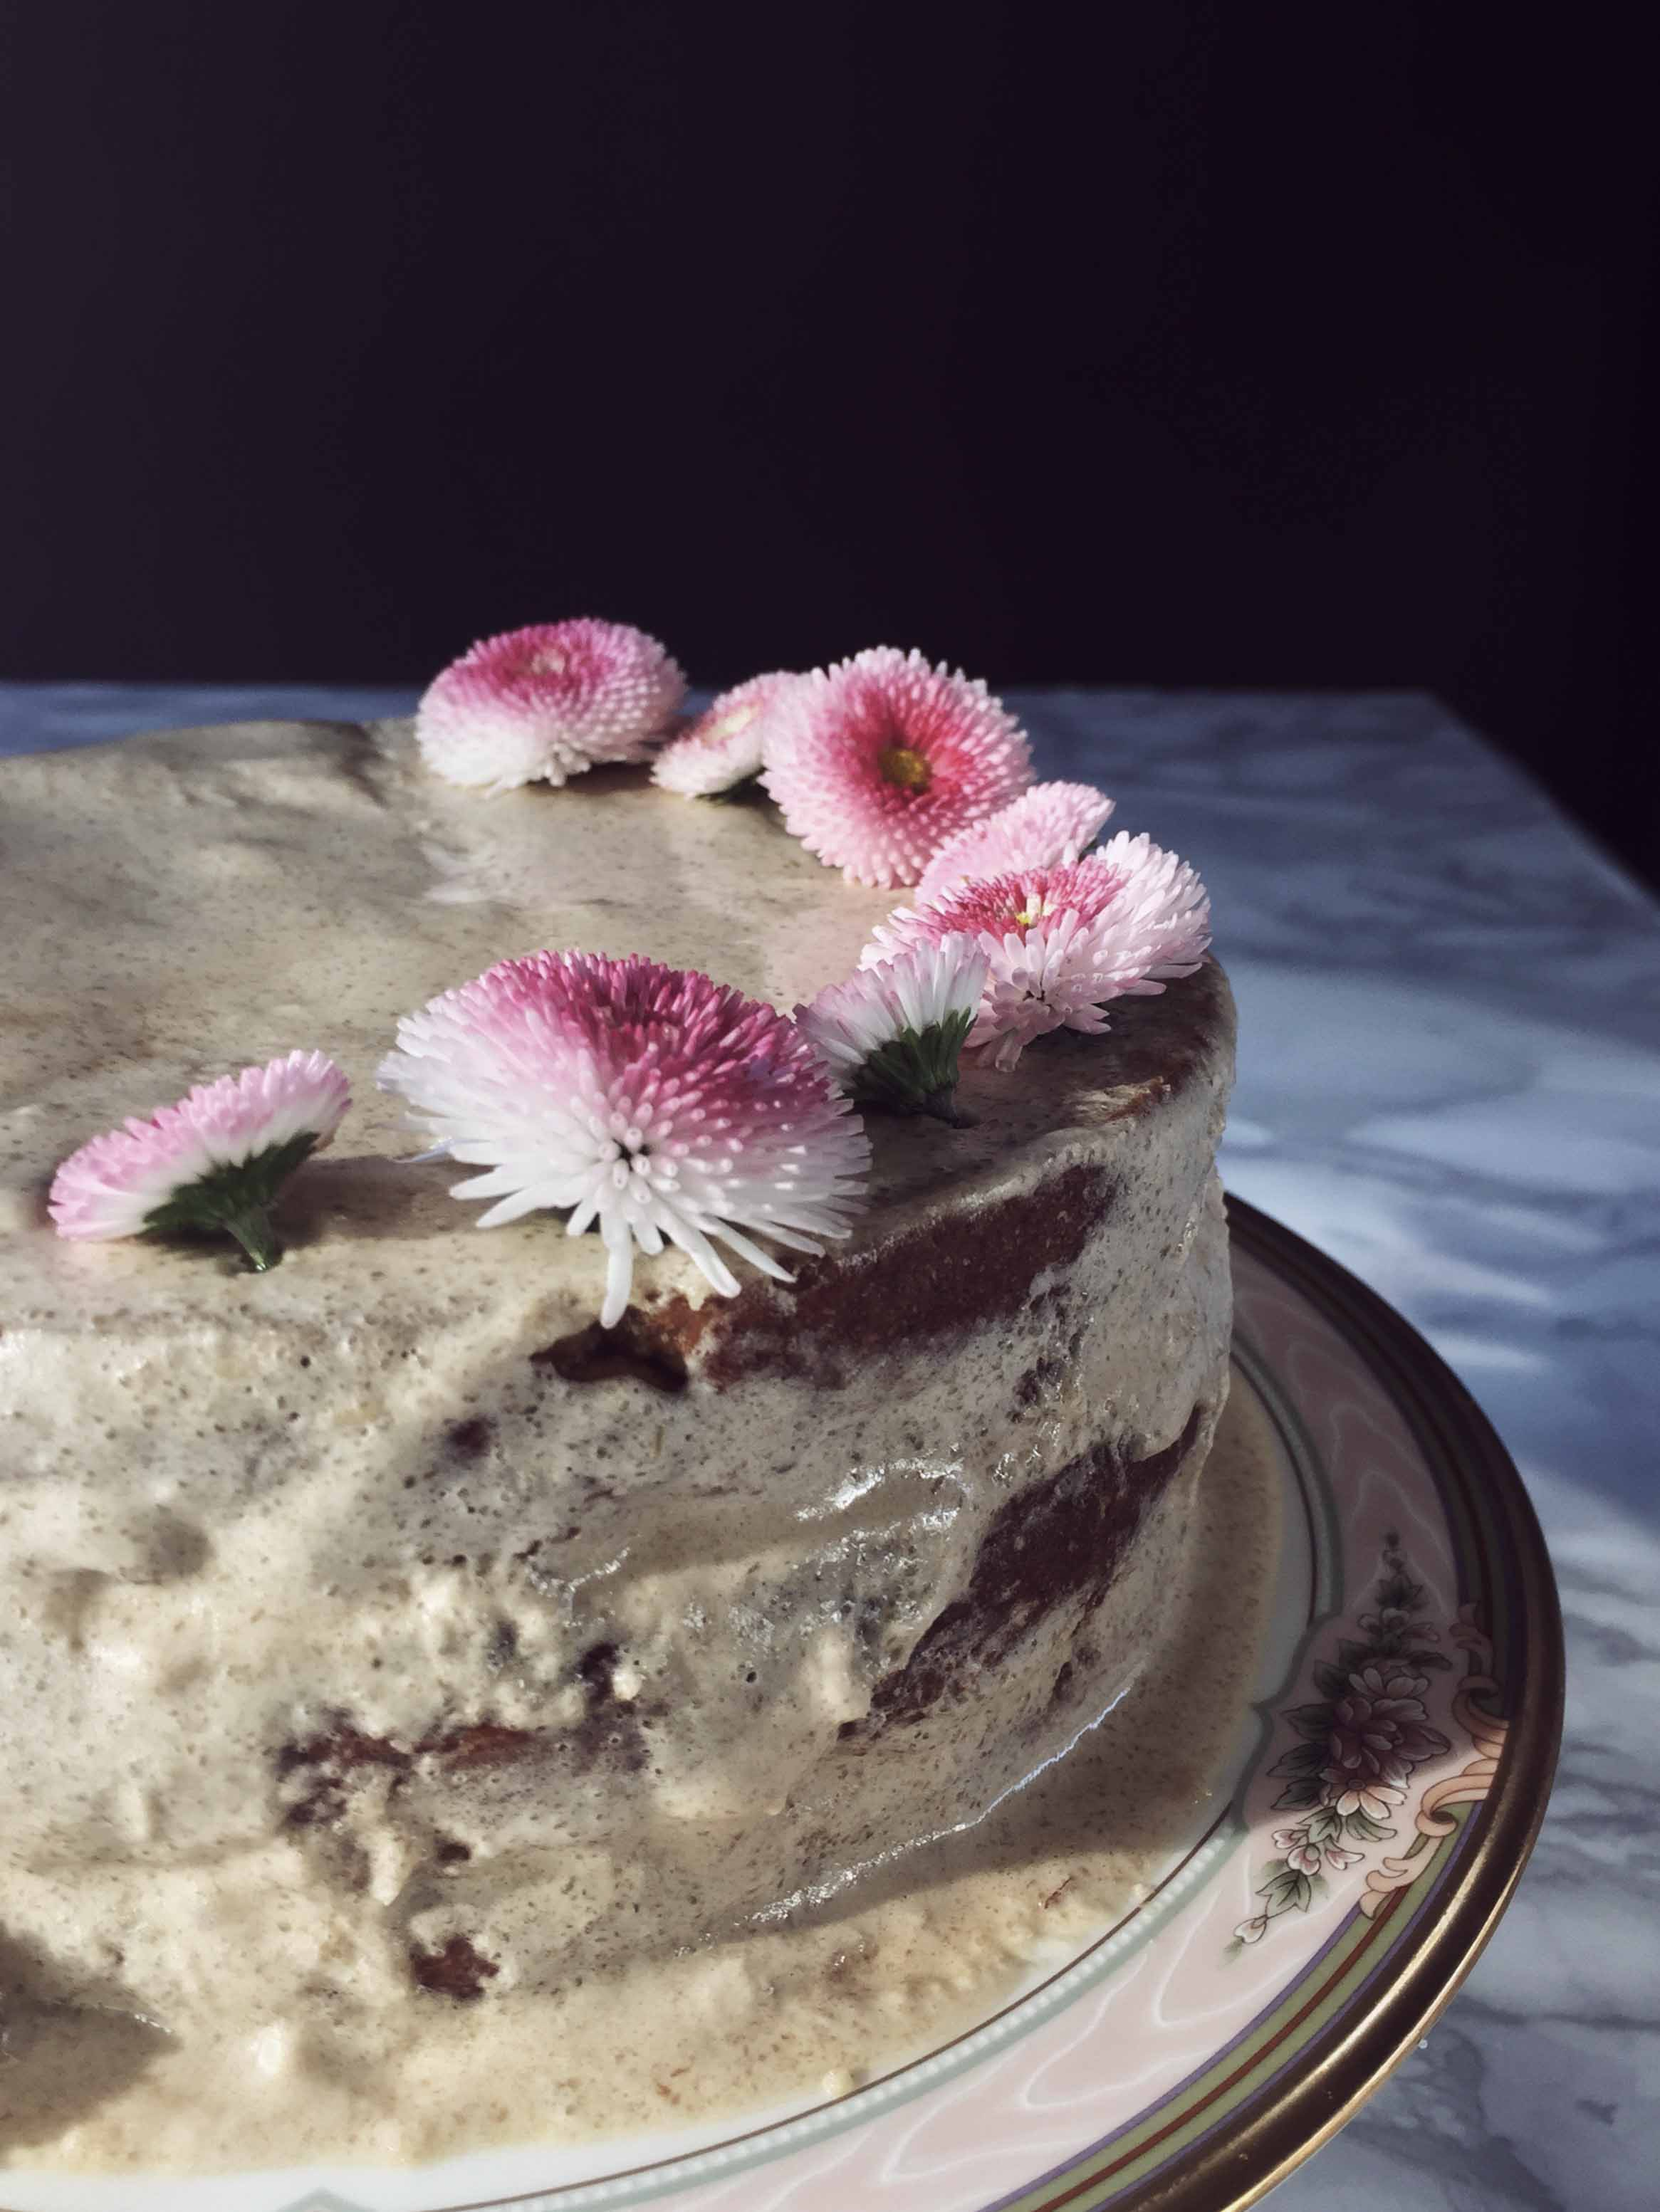 olive oil carrot cake with frosting and edible flowers